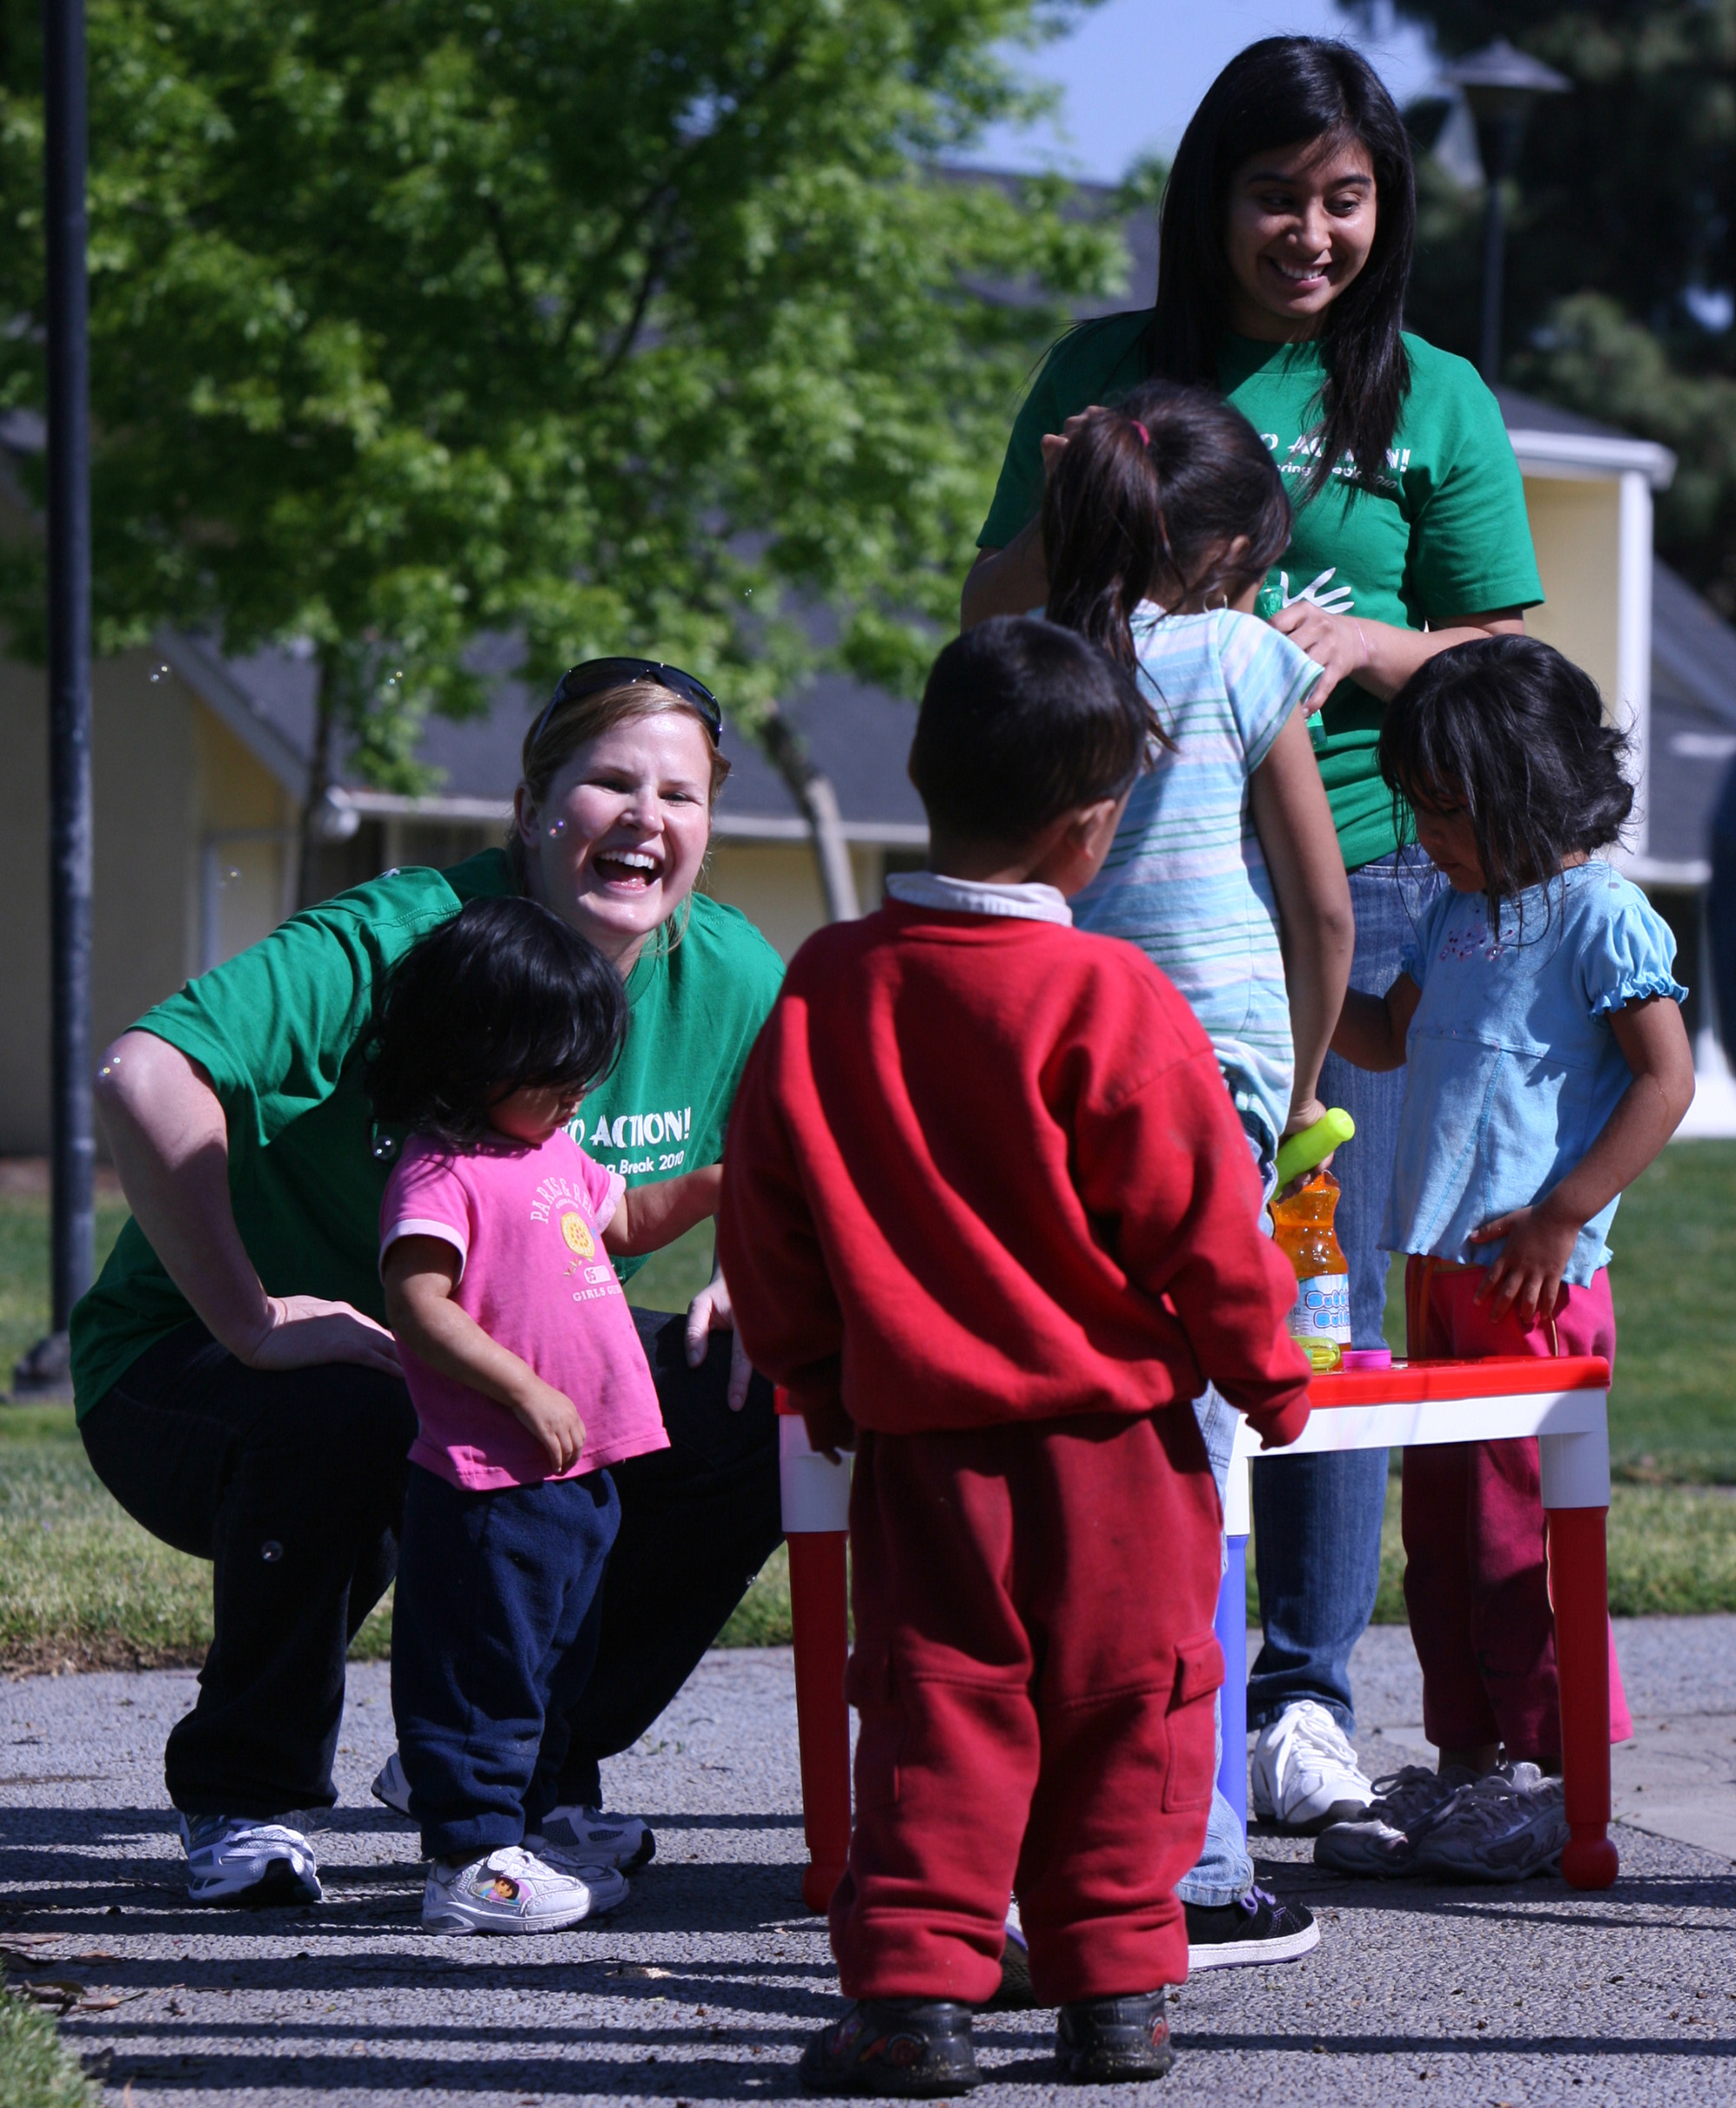 Fresno State students Alison Edwards, left, and Valeria Ramirez, right, teach kids to blow bubbles at Bigby Villa Apartments in Fresno, California on ...